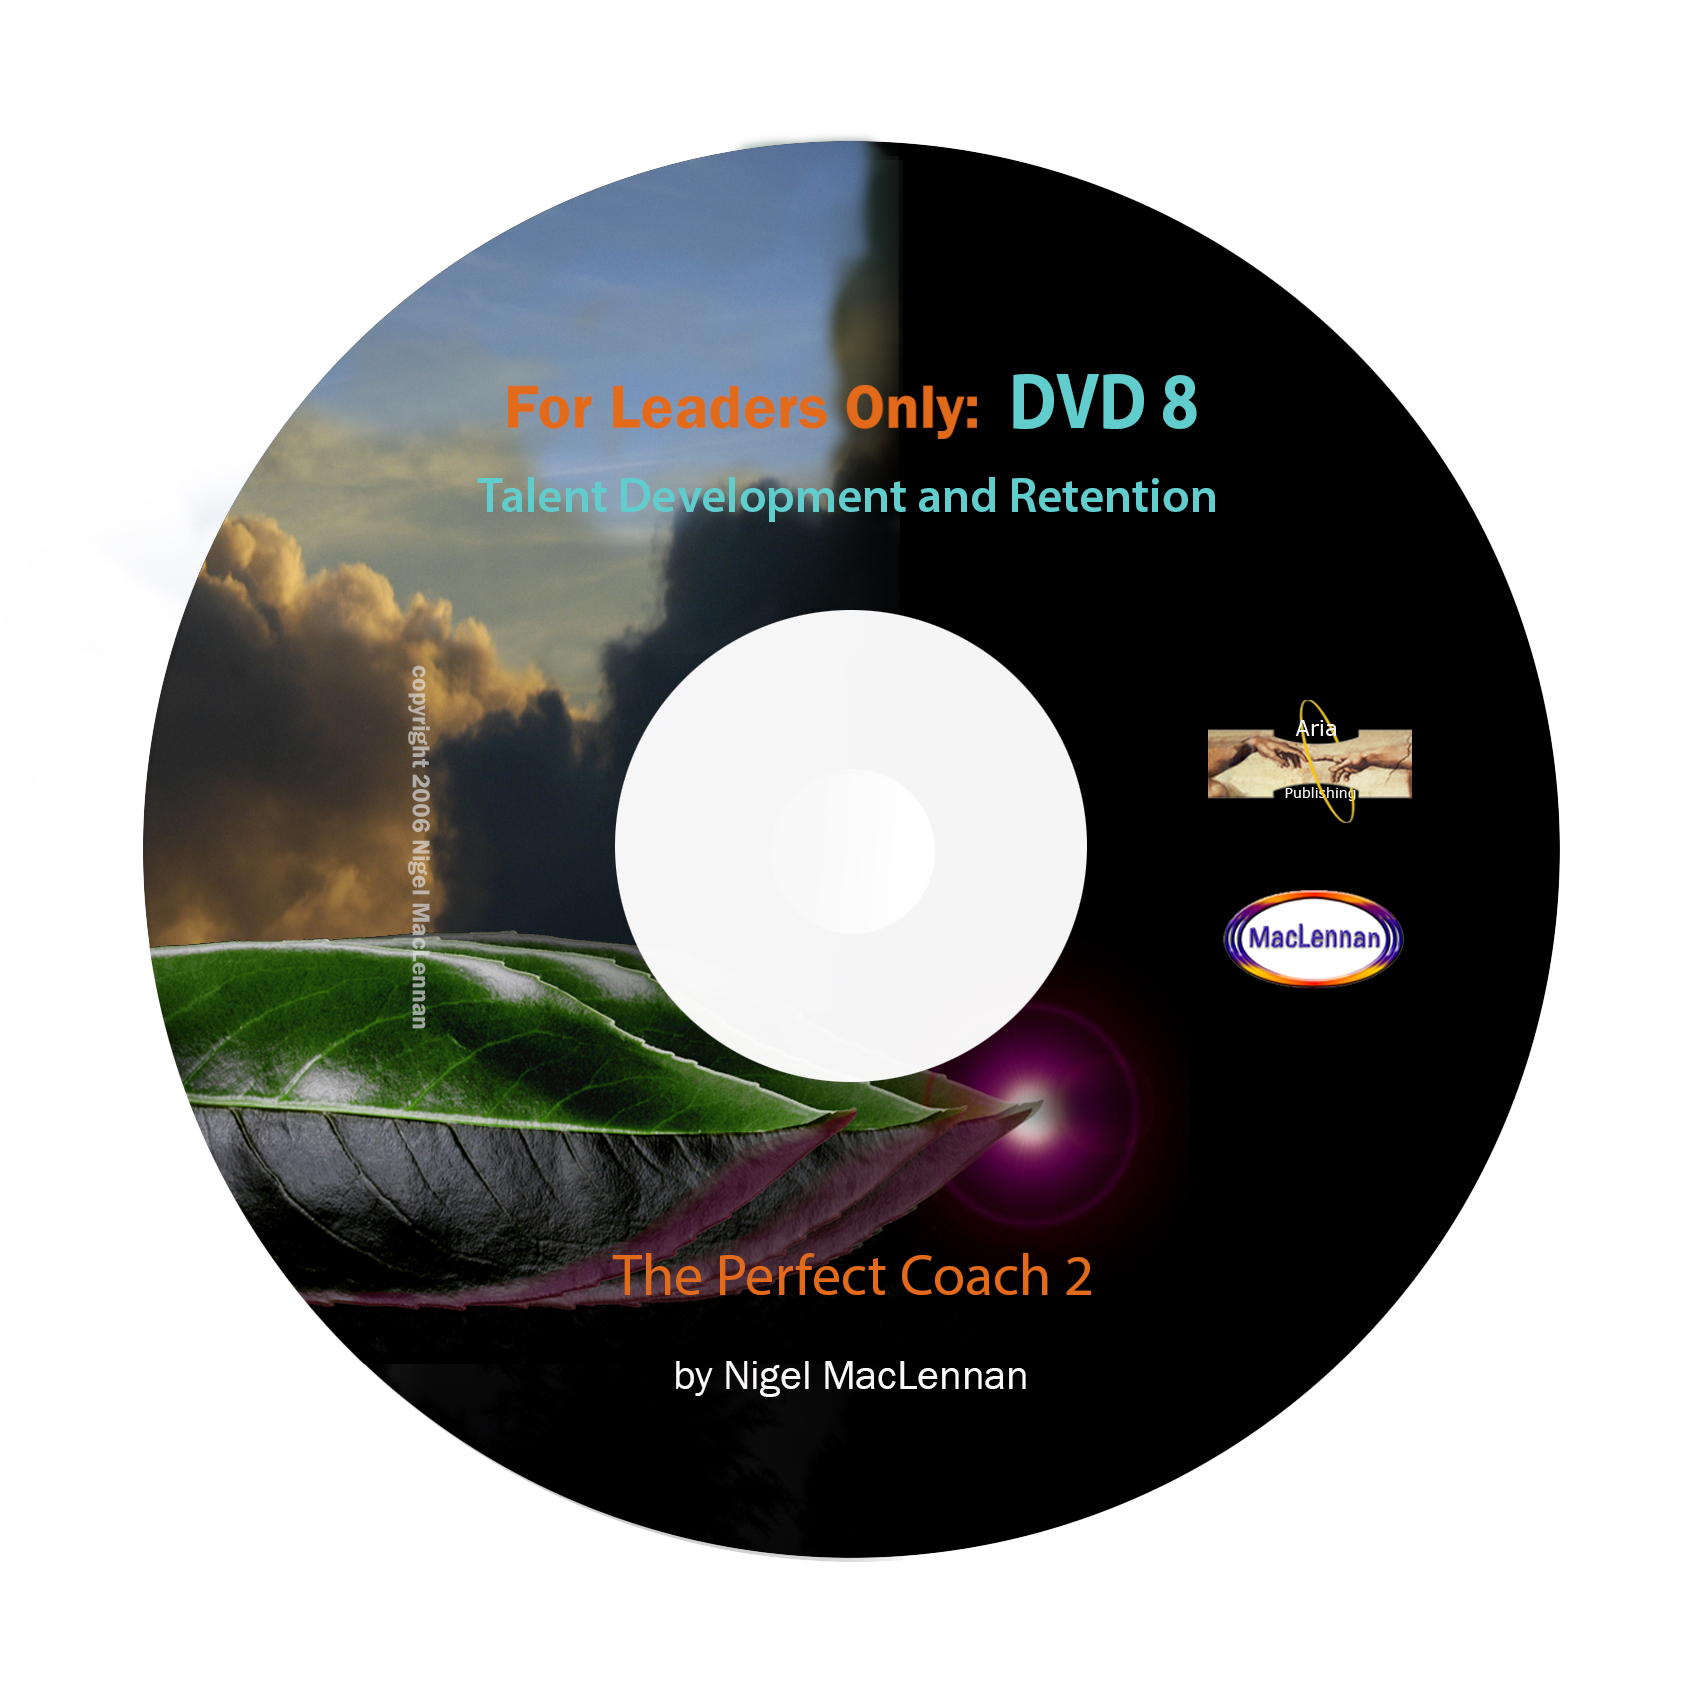 For Leaders Only - The Perfect Coach 2 DVD